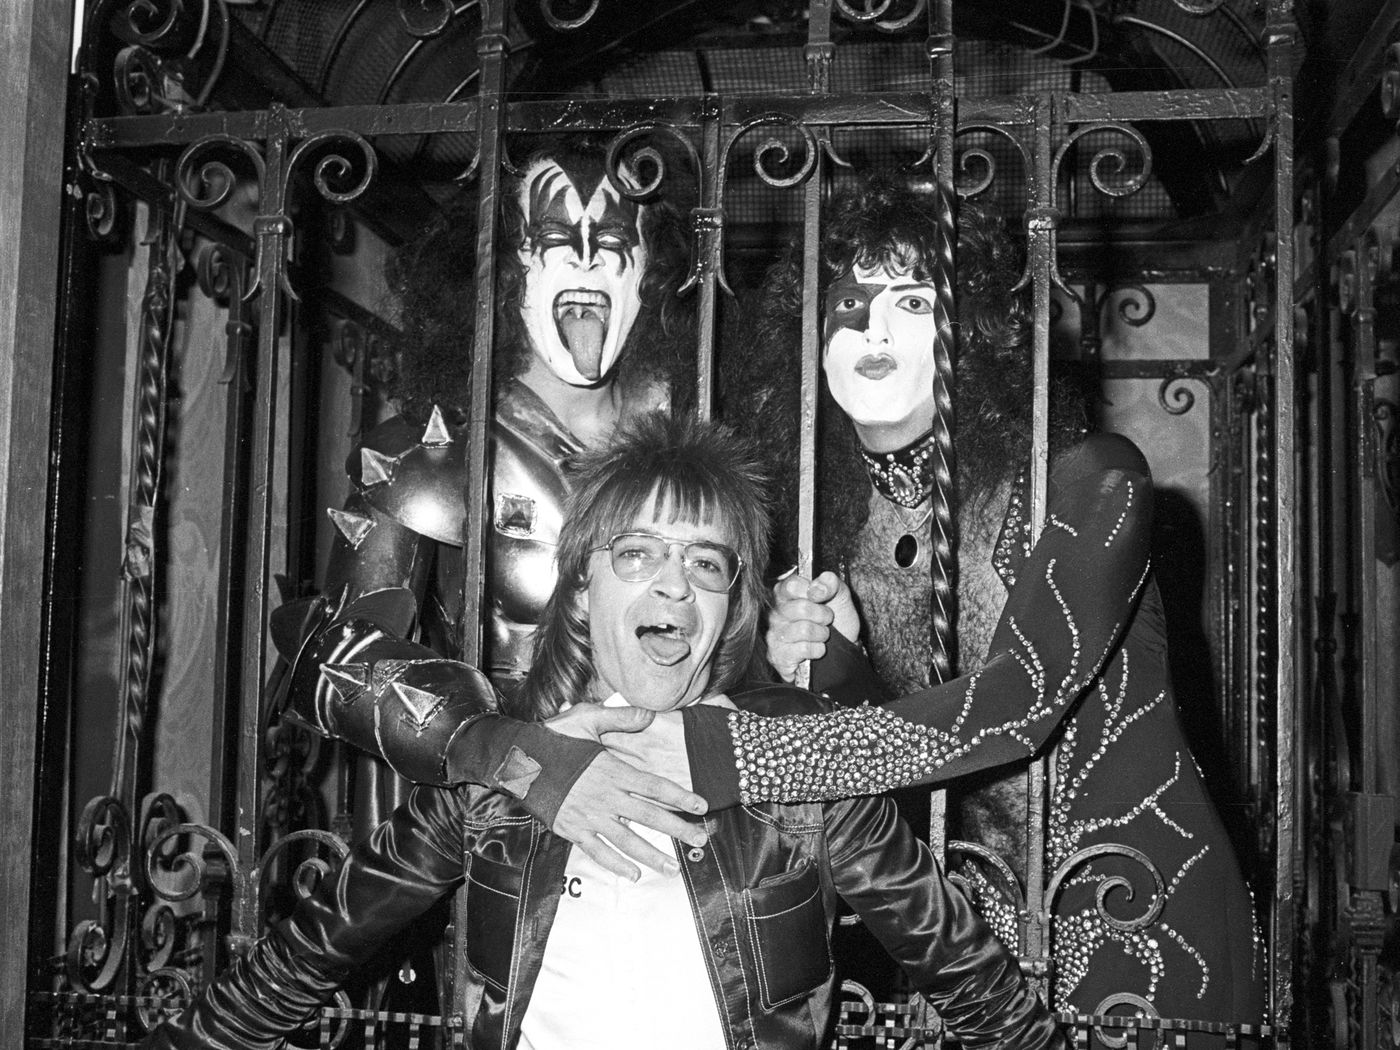 The Sunset Strip in the 1980s: The heyday of glam metal and